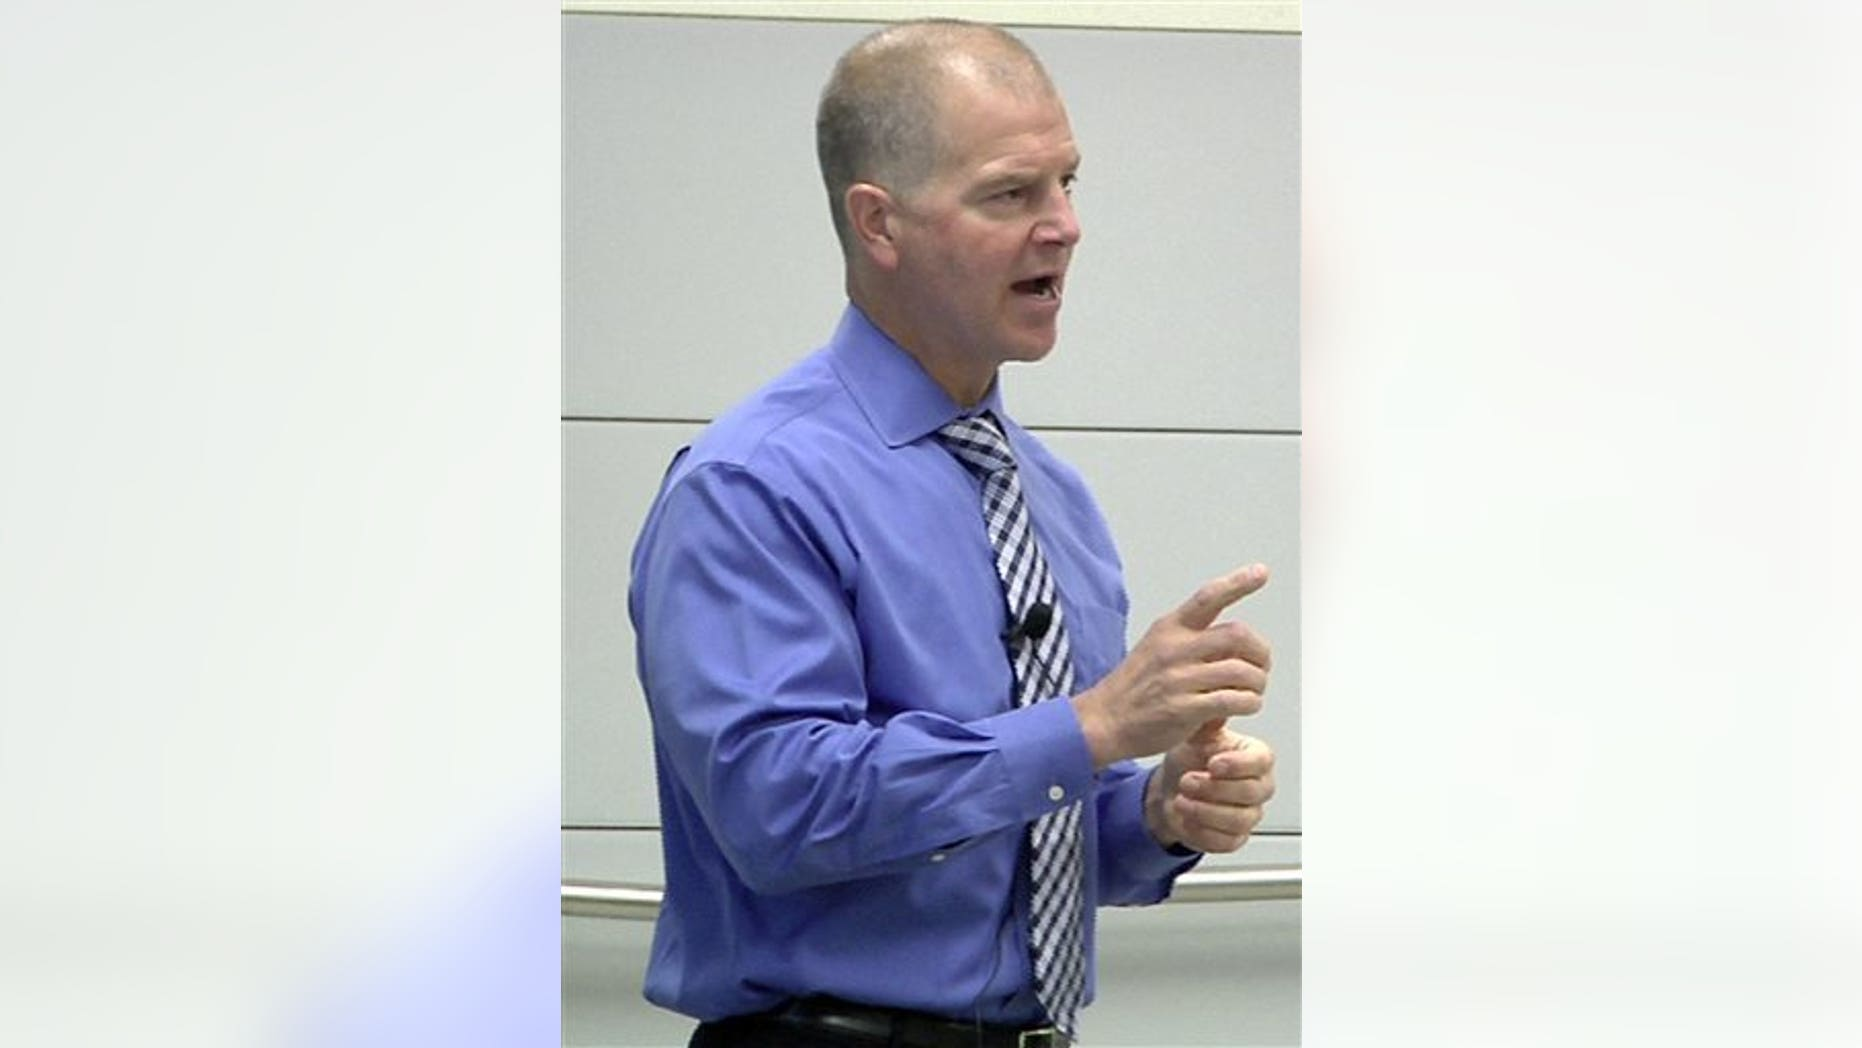 Oct. 17, 2014: In this photo taken from video, Autism safety instructor Scott Schuelke leads a training seminar for first responders at Eastern Michigan University in Ypsilanti, Mich.